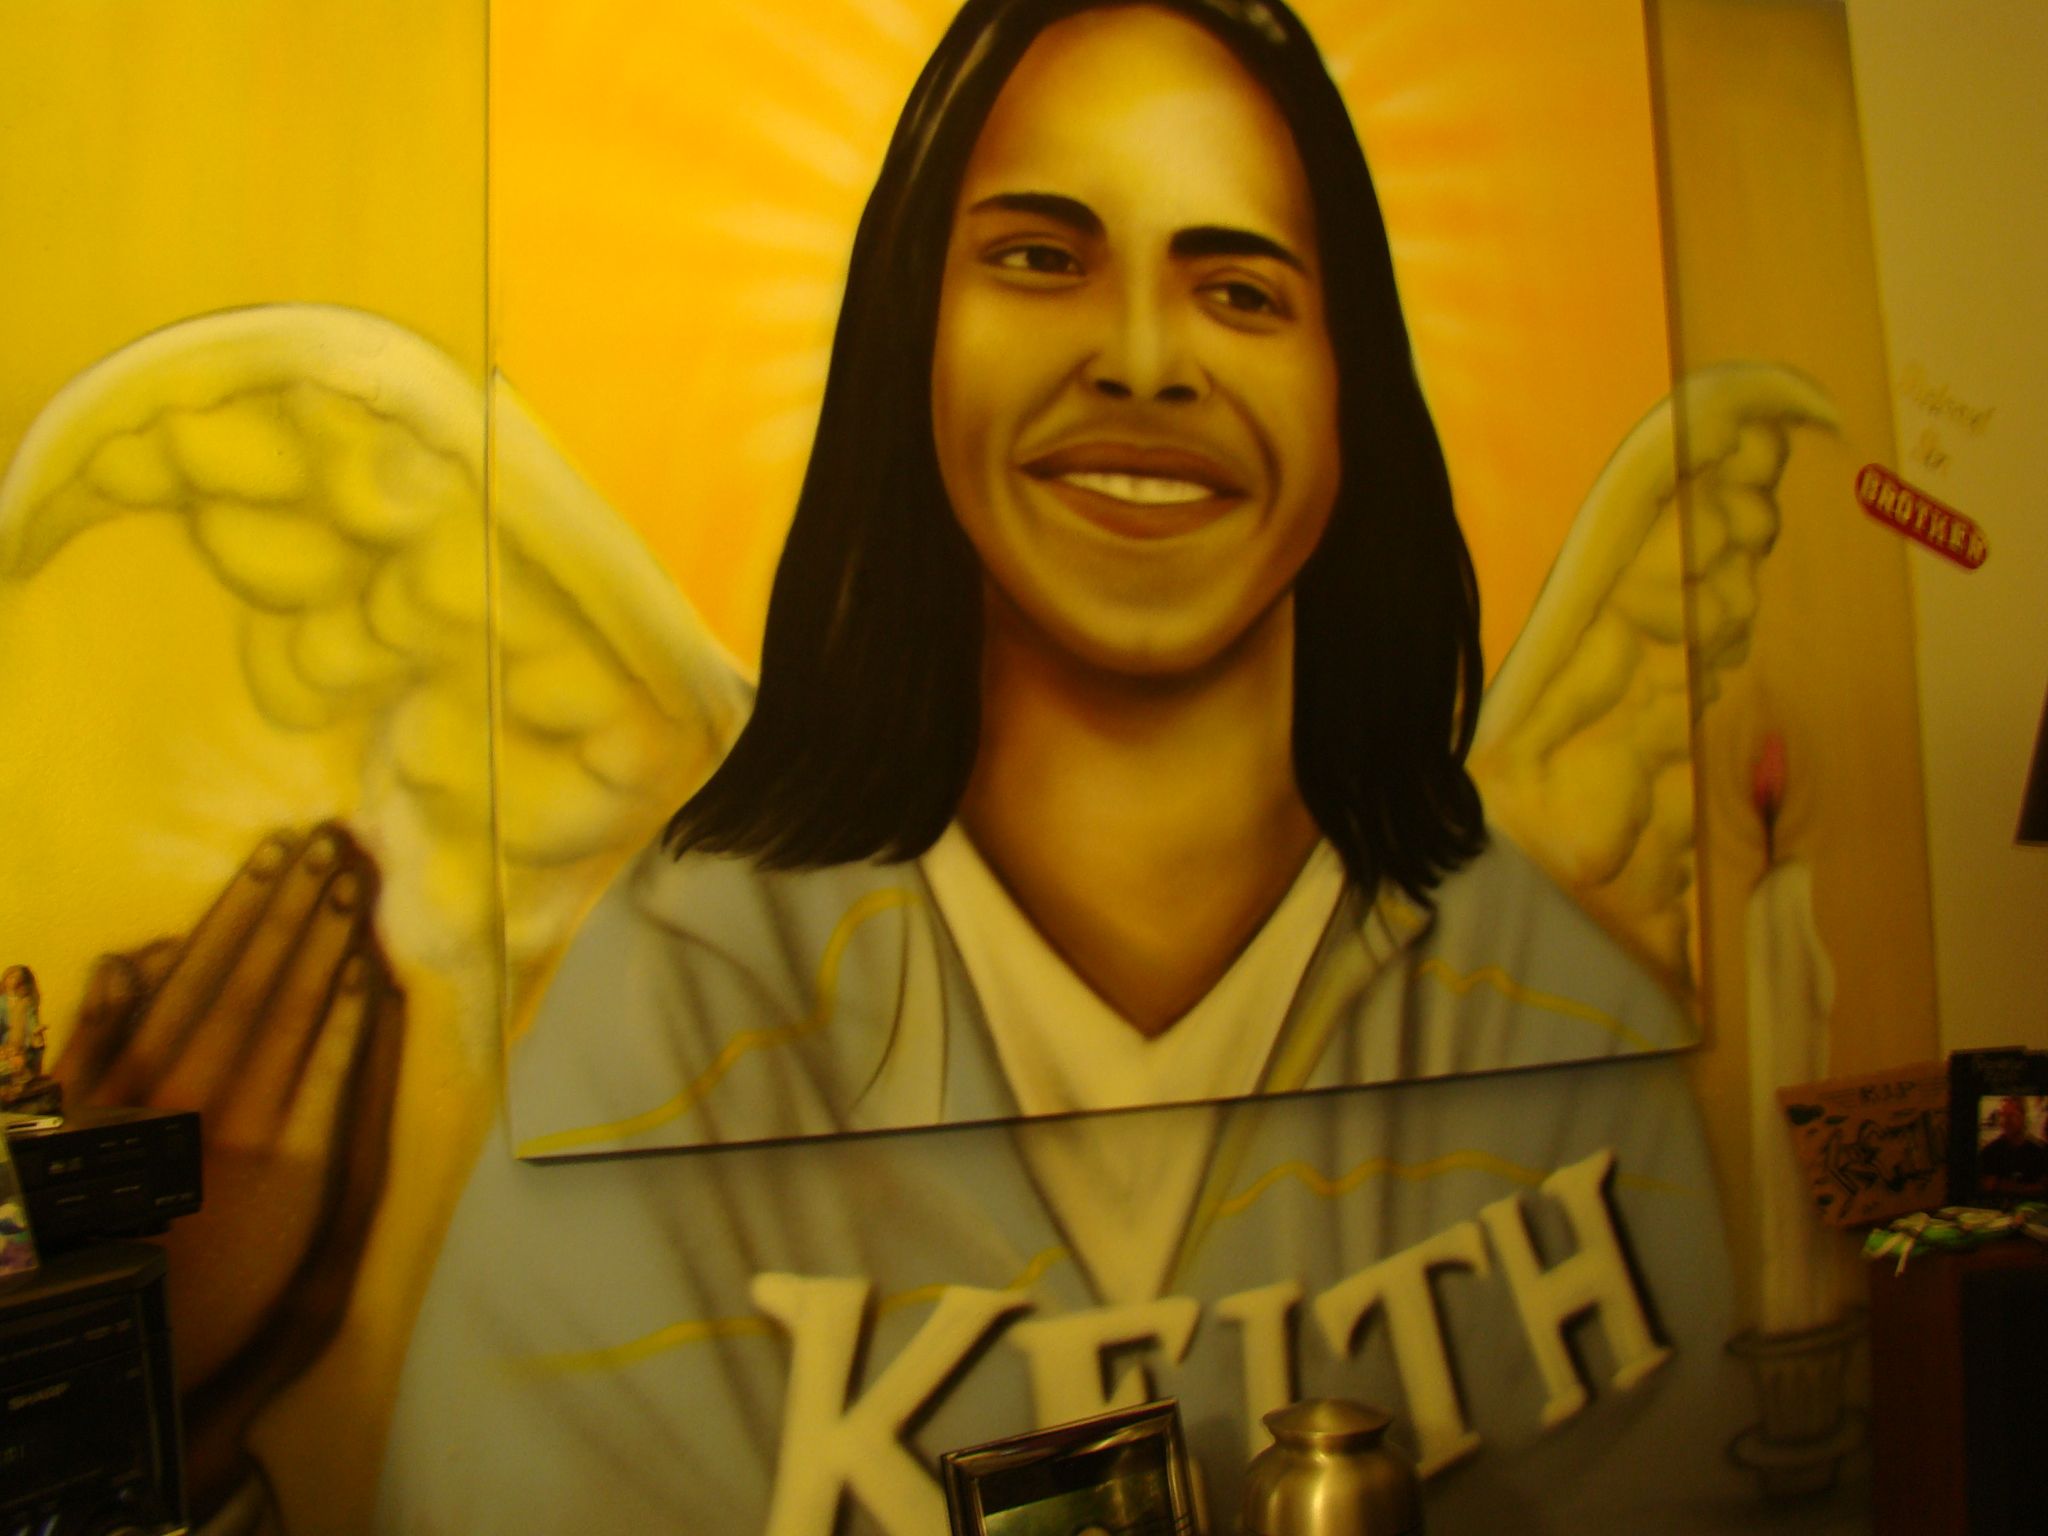 In Keith's room, legendary local graffiti artist Chico painted a mural of Keith with angel wings that takes up one whole wall.